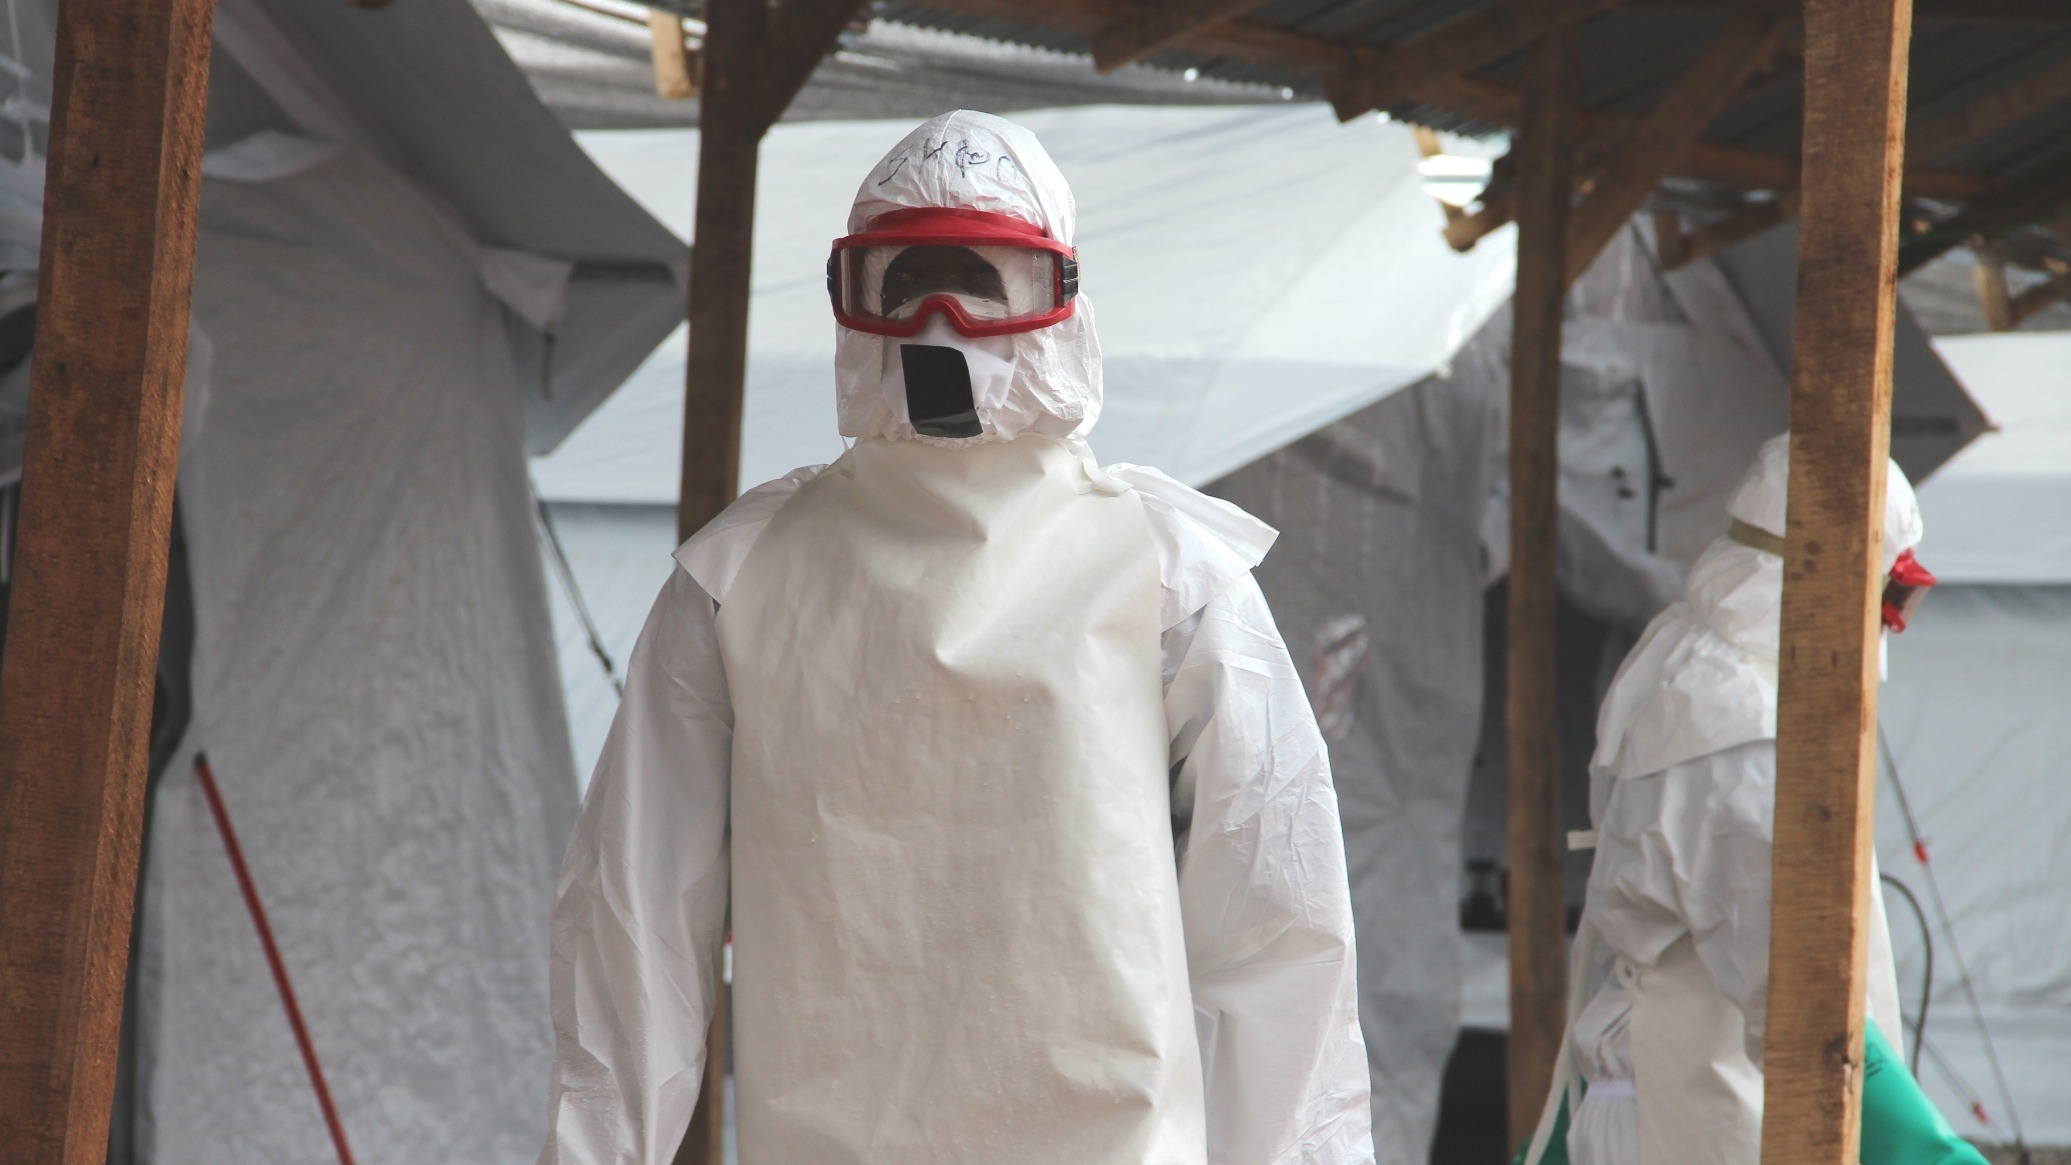 IFRC health worker in a PPE in their Ebola treatment centre outside of Kenema (October 2014)